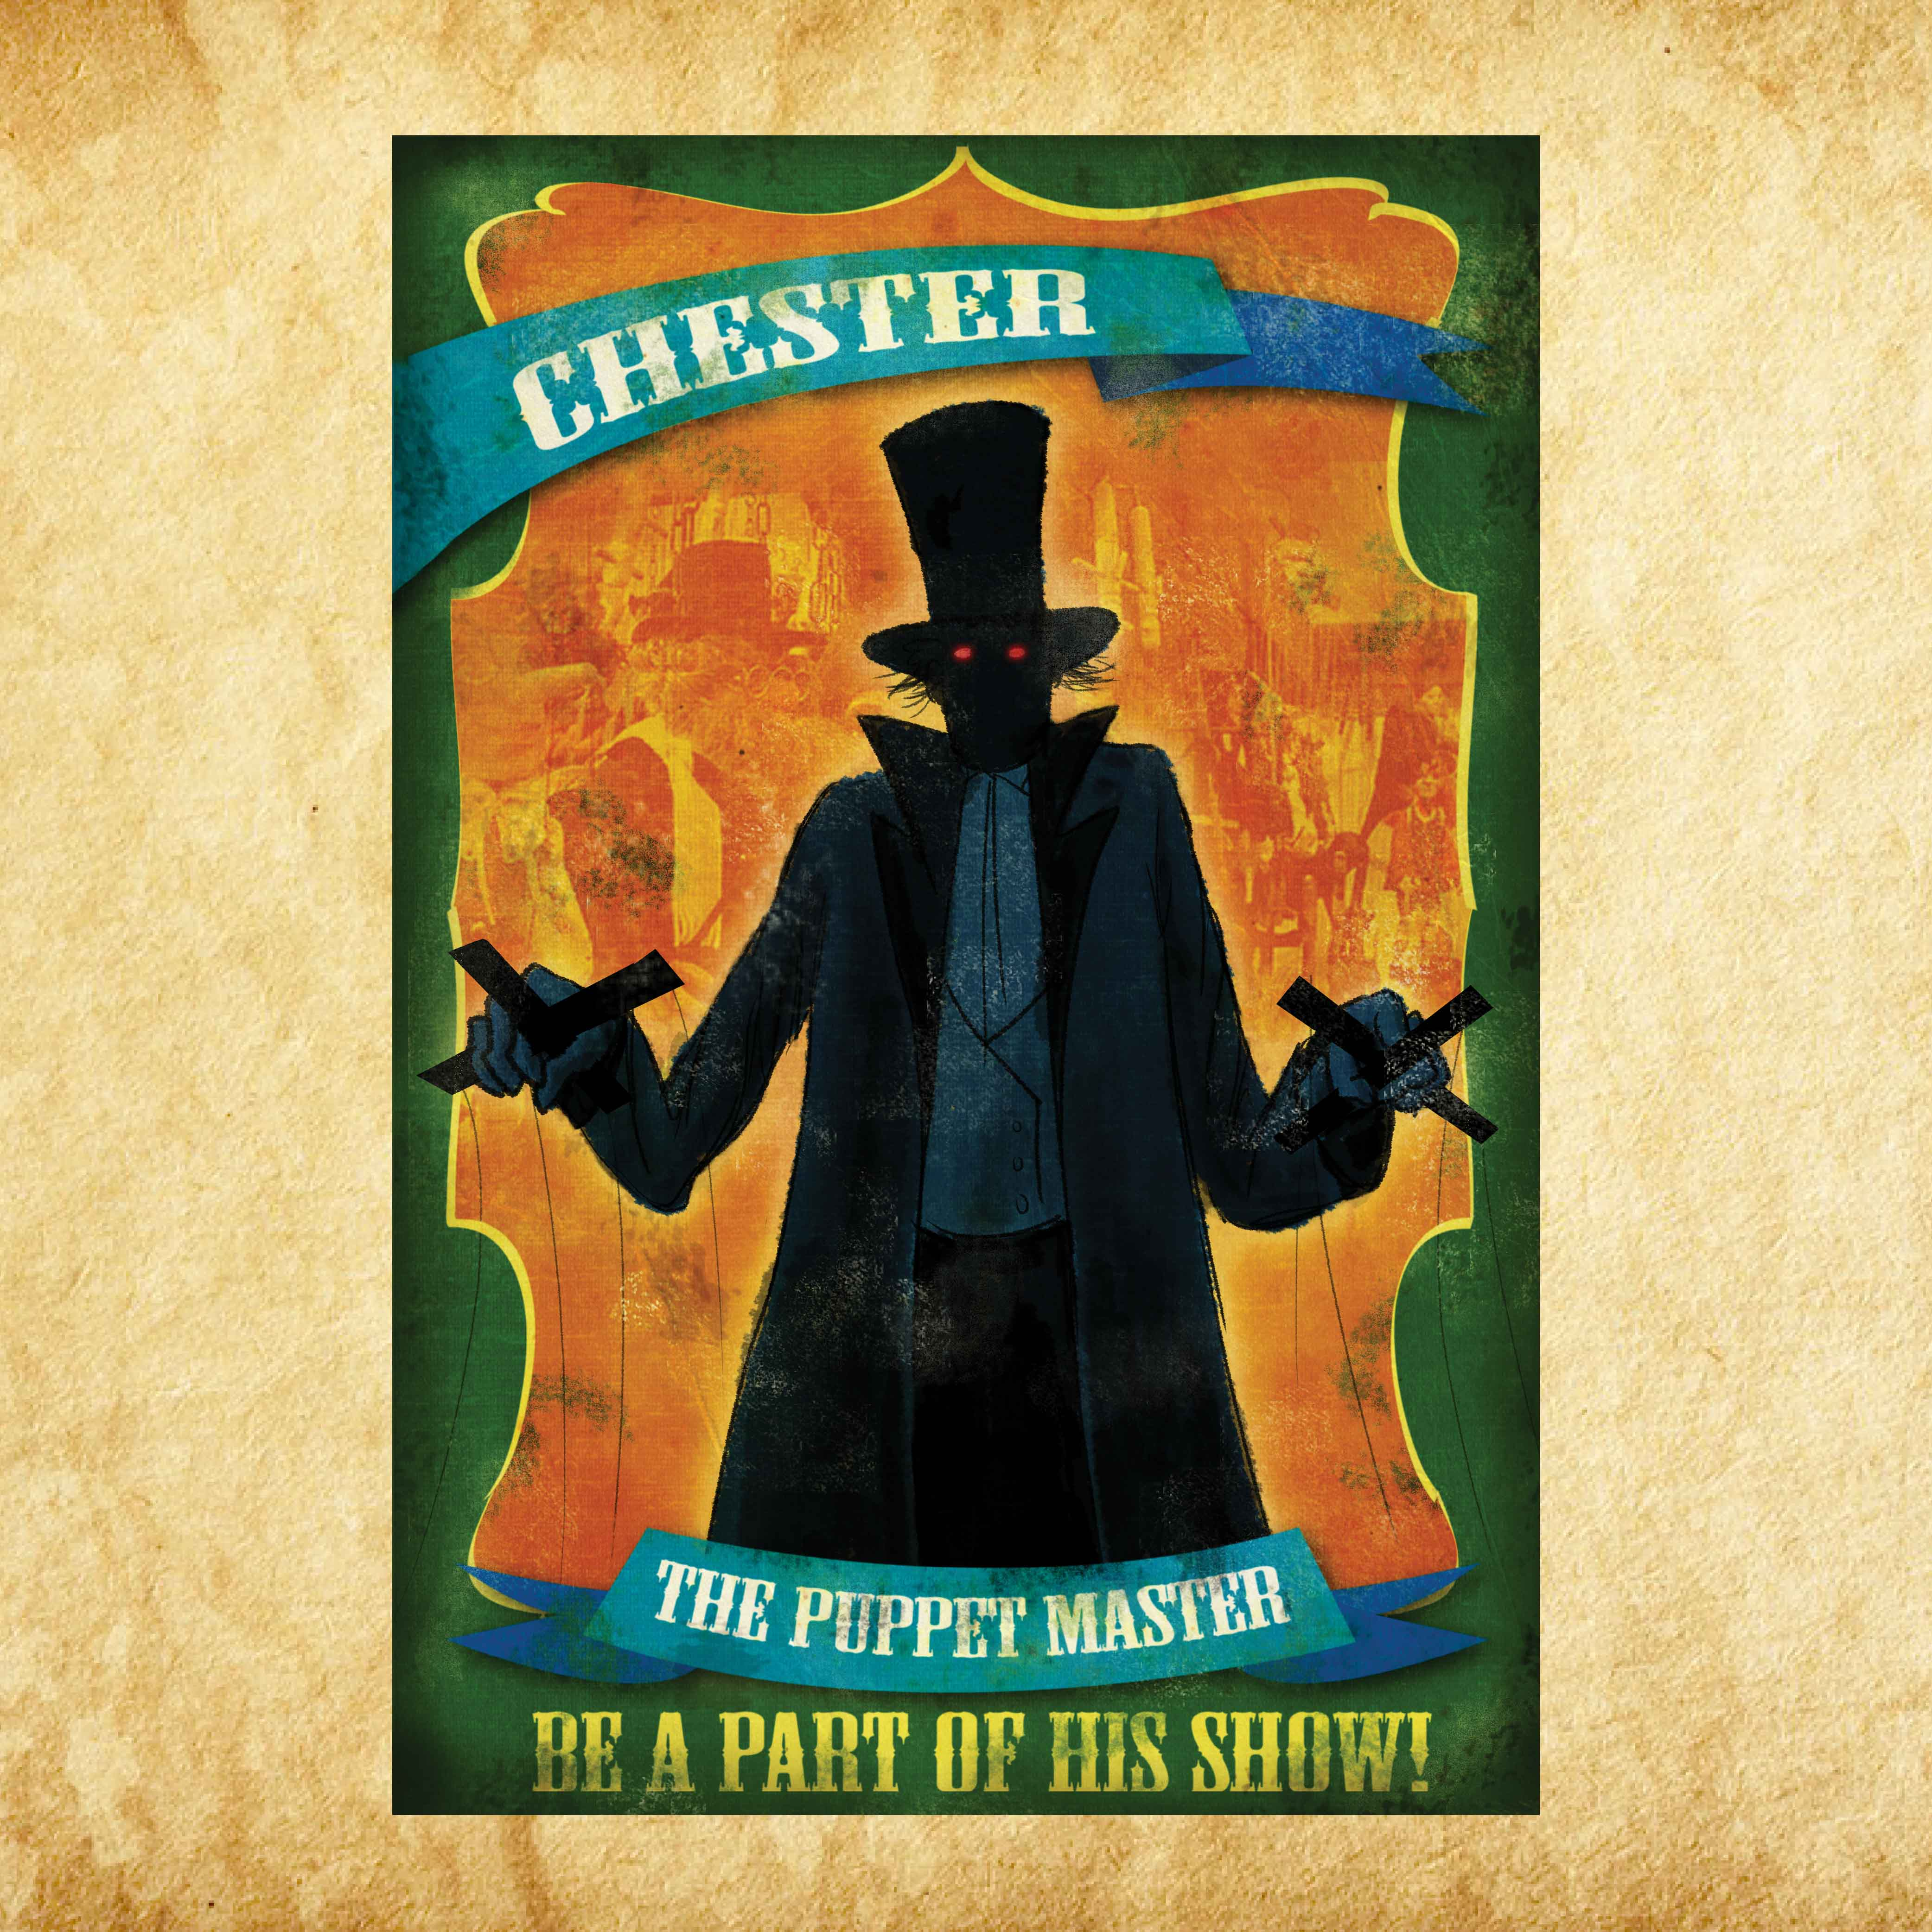 Chester the Puppetmaster 4'x6'